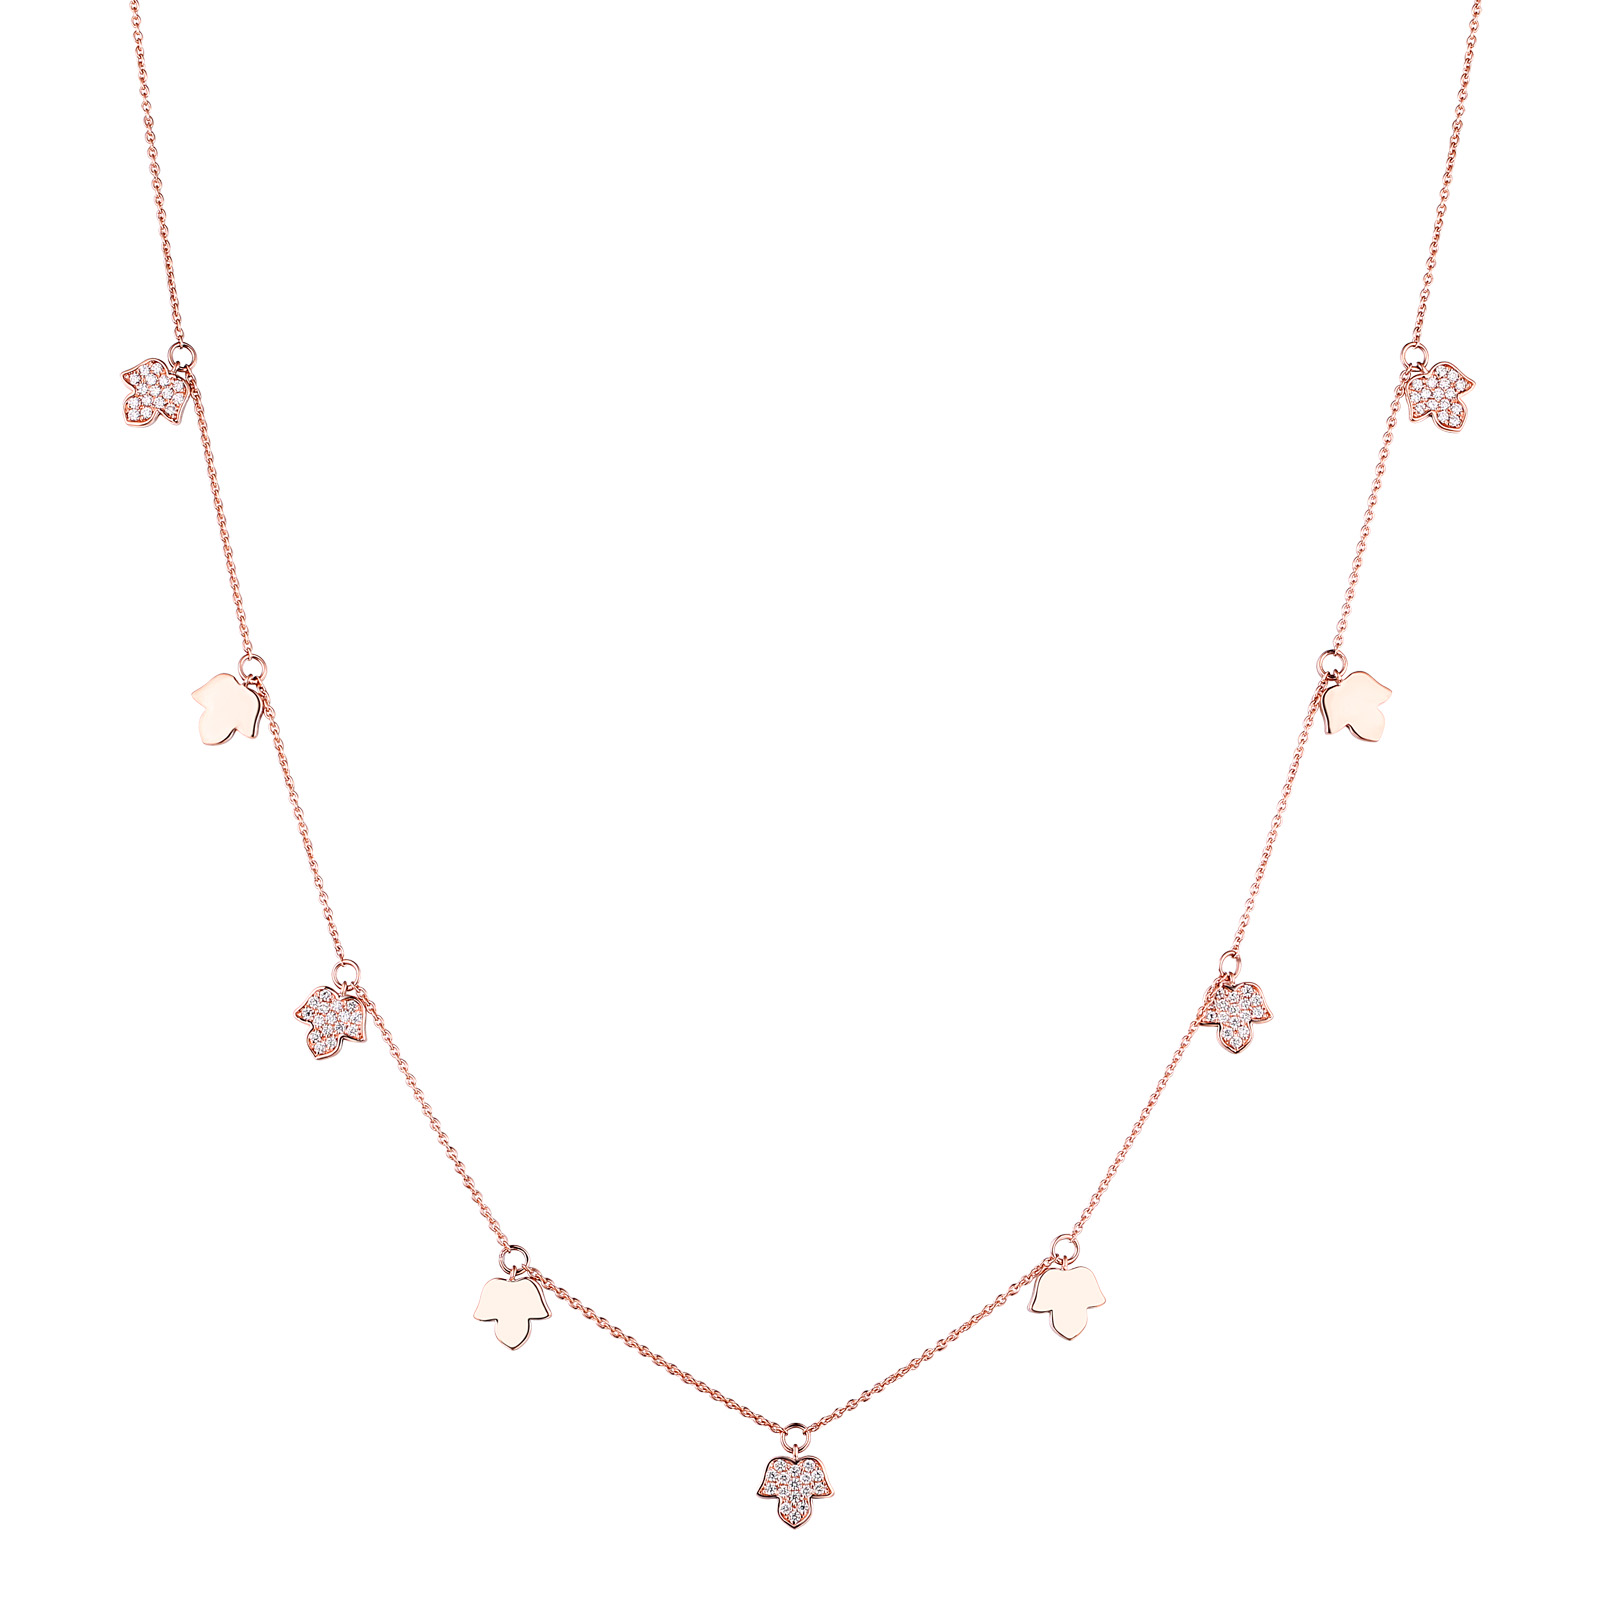 NL25534WHT- 14K Rose Gold Diamond Necklace, 0.51 TCW